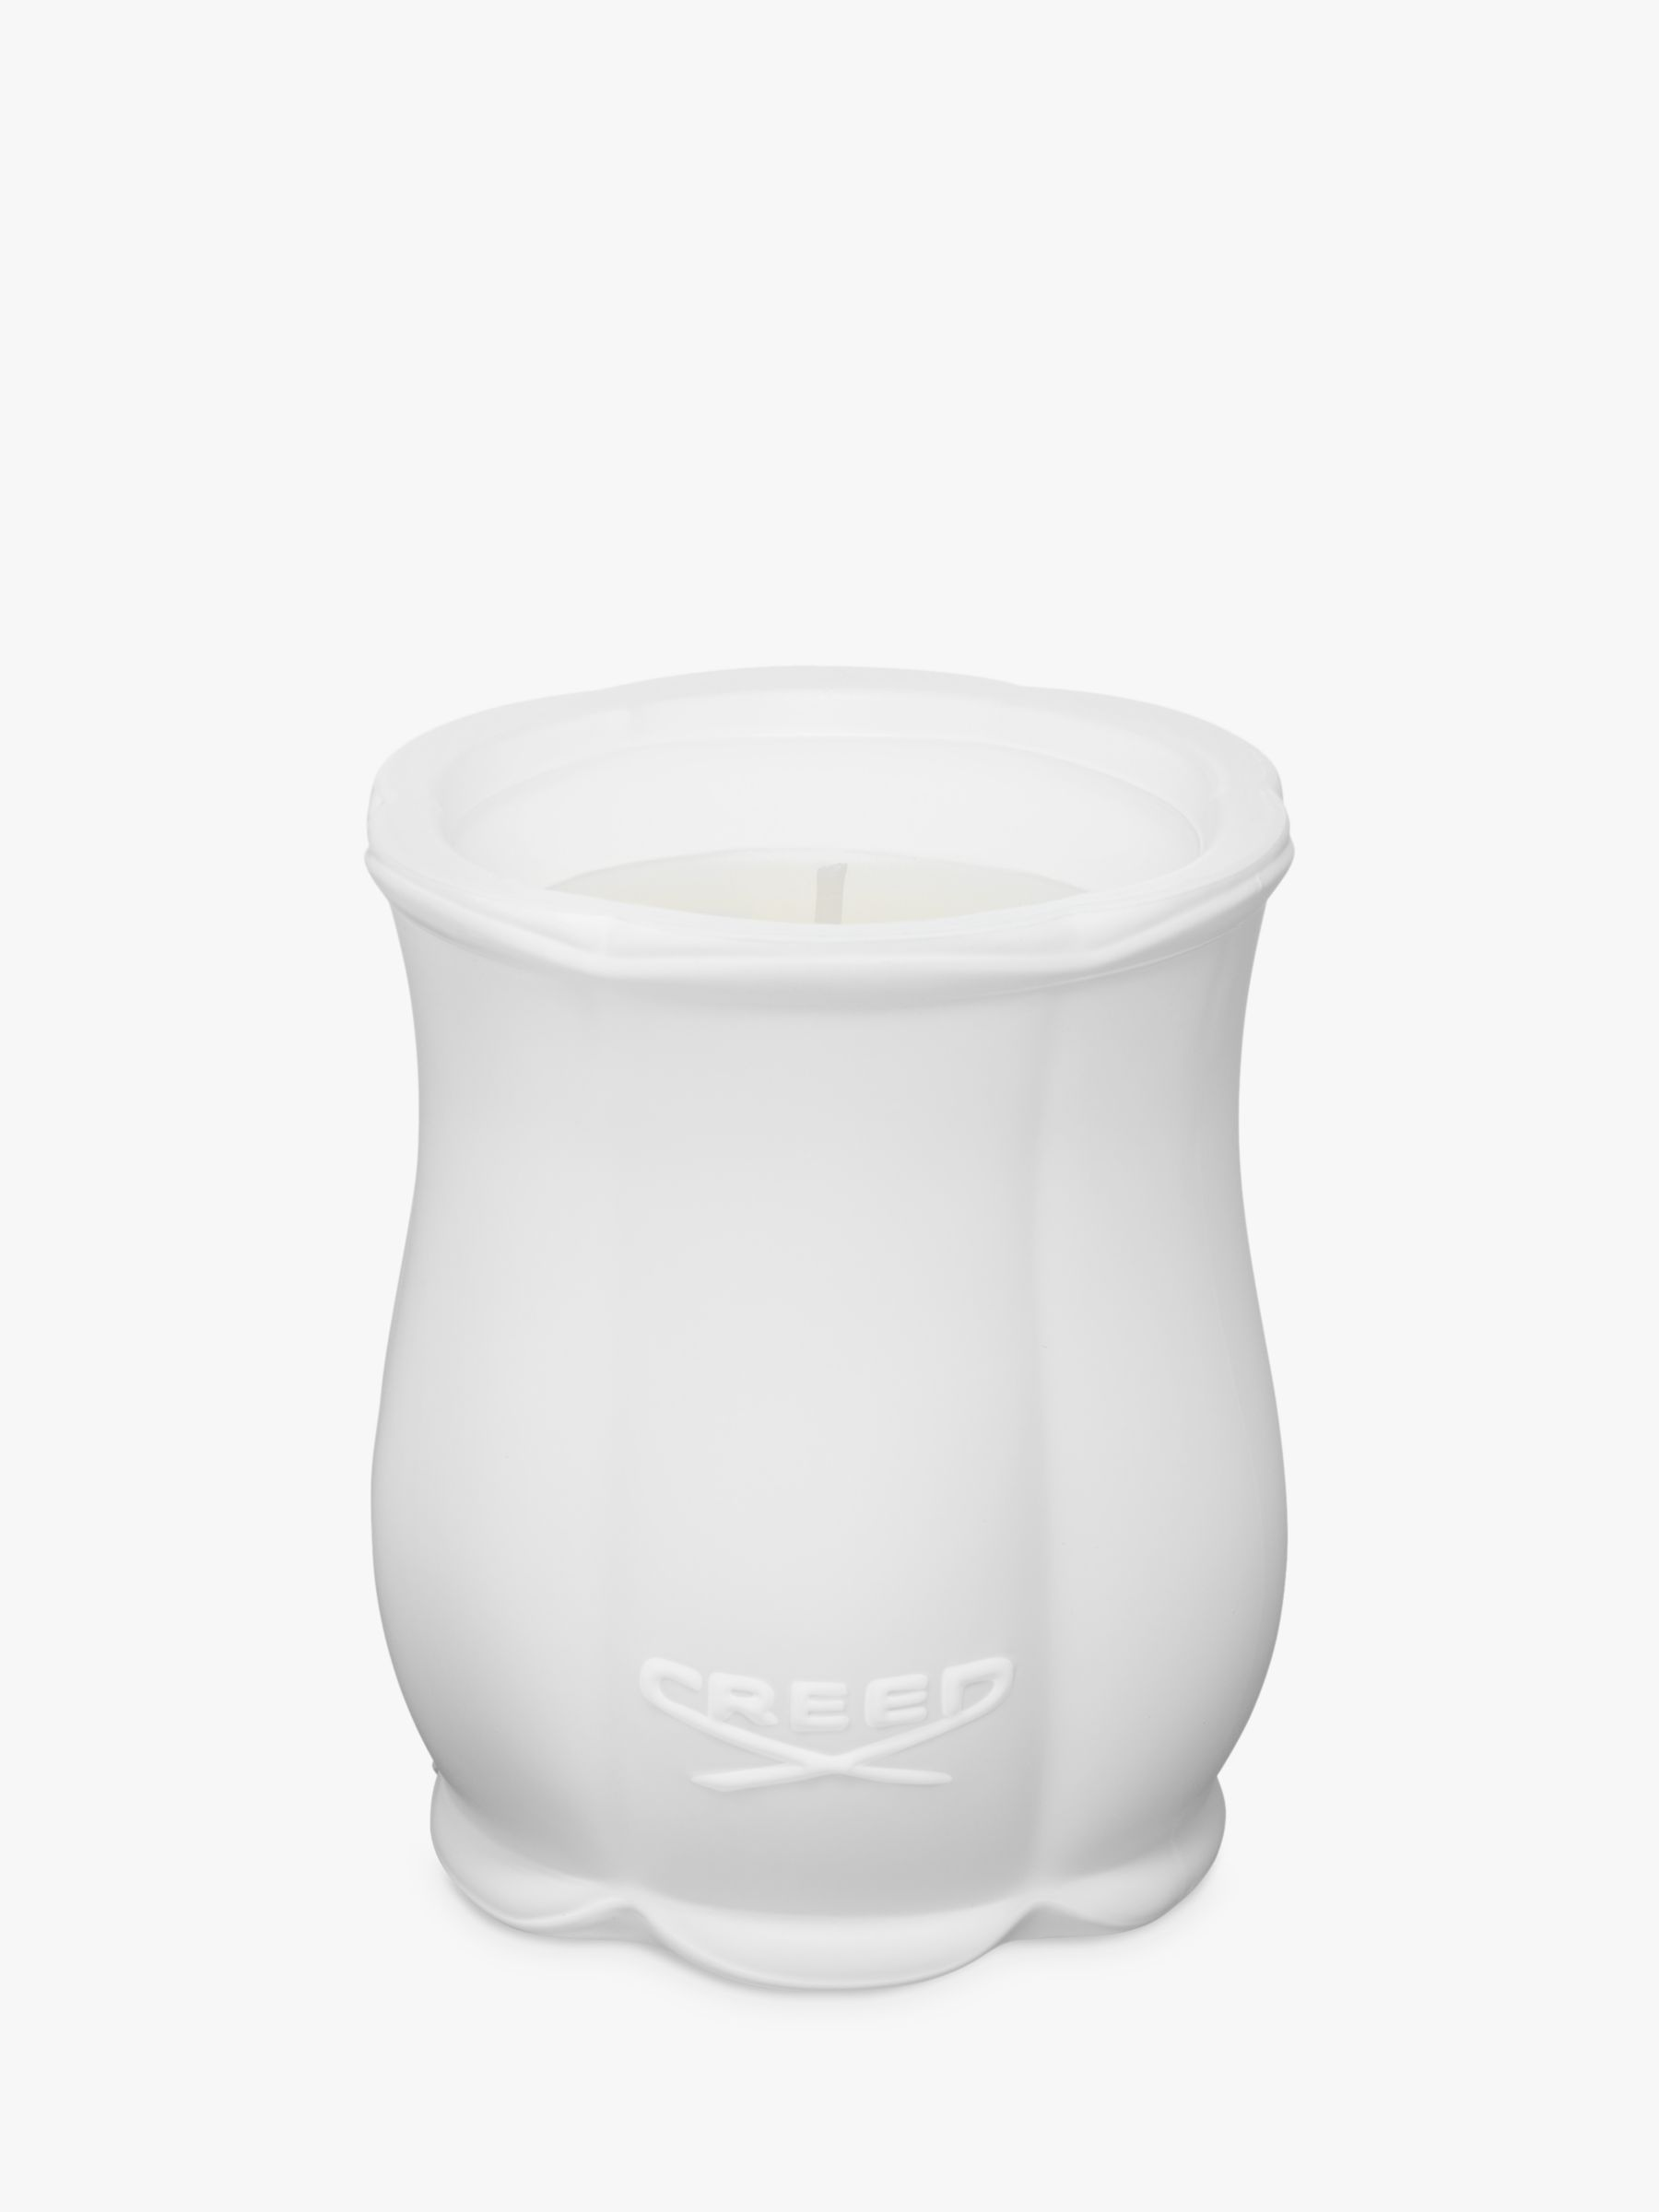 Creed CREED Love in White Scented Candle, 200g